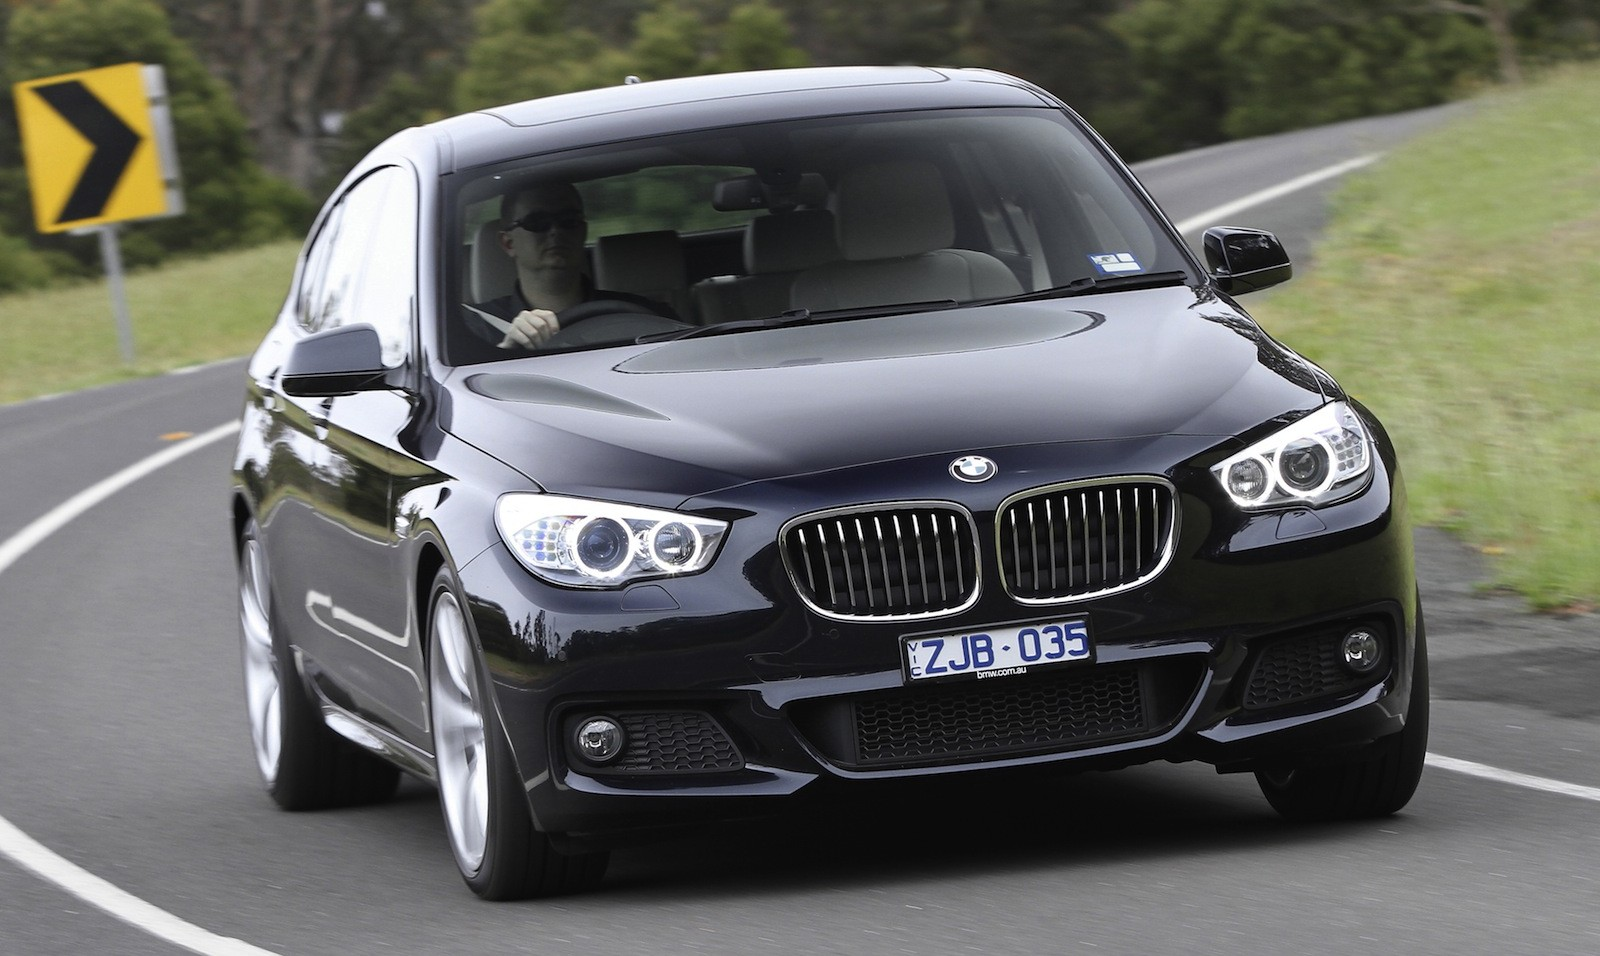 The BMW 520D Was The Most Popular Model Among Import Cars In Korea In 2013.